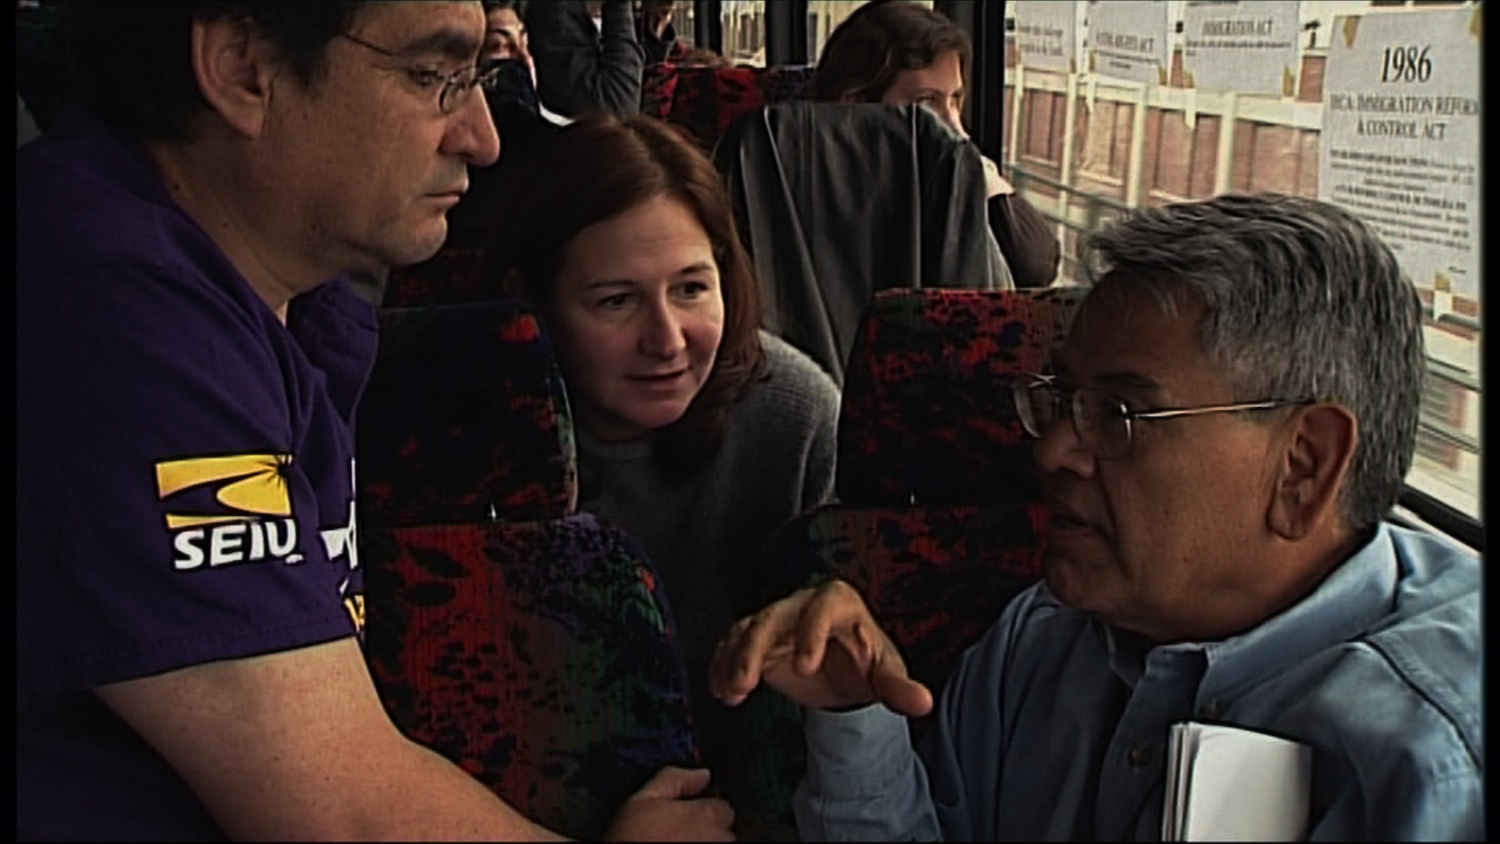 07_AFL_HD_STILL_Ben Esther Eliseo on Bus 01.jpg